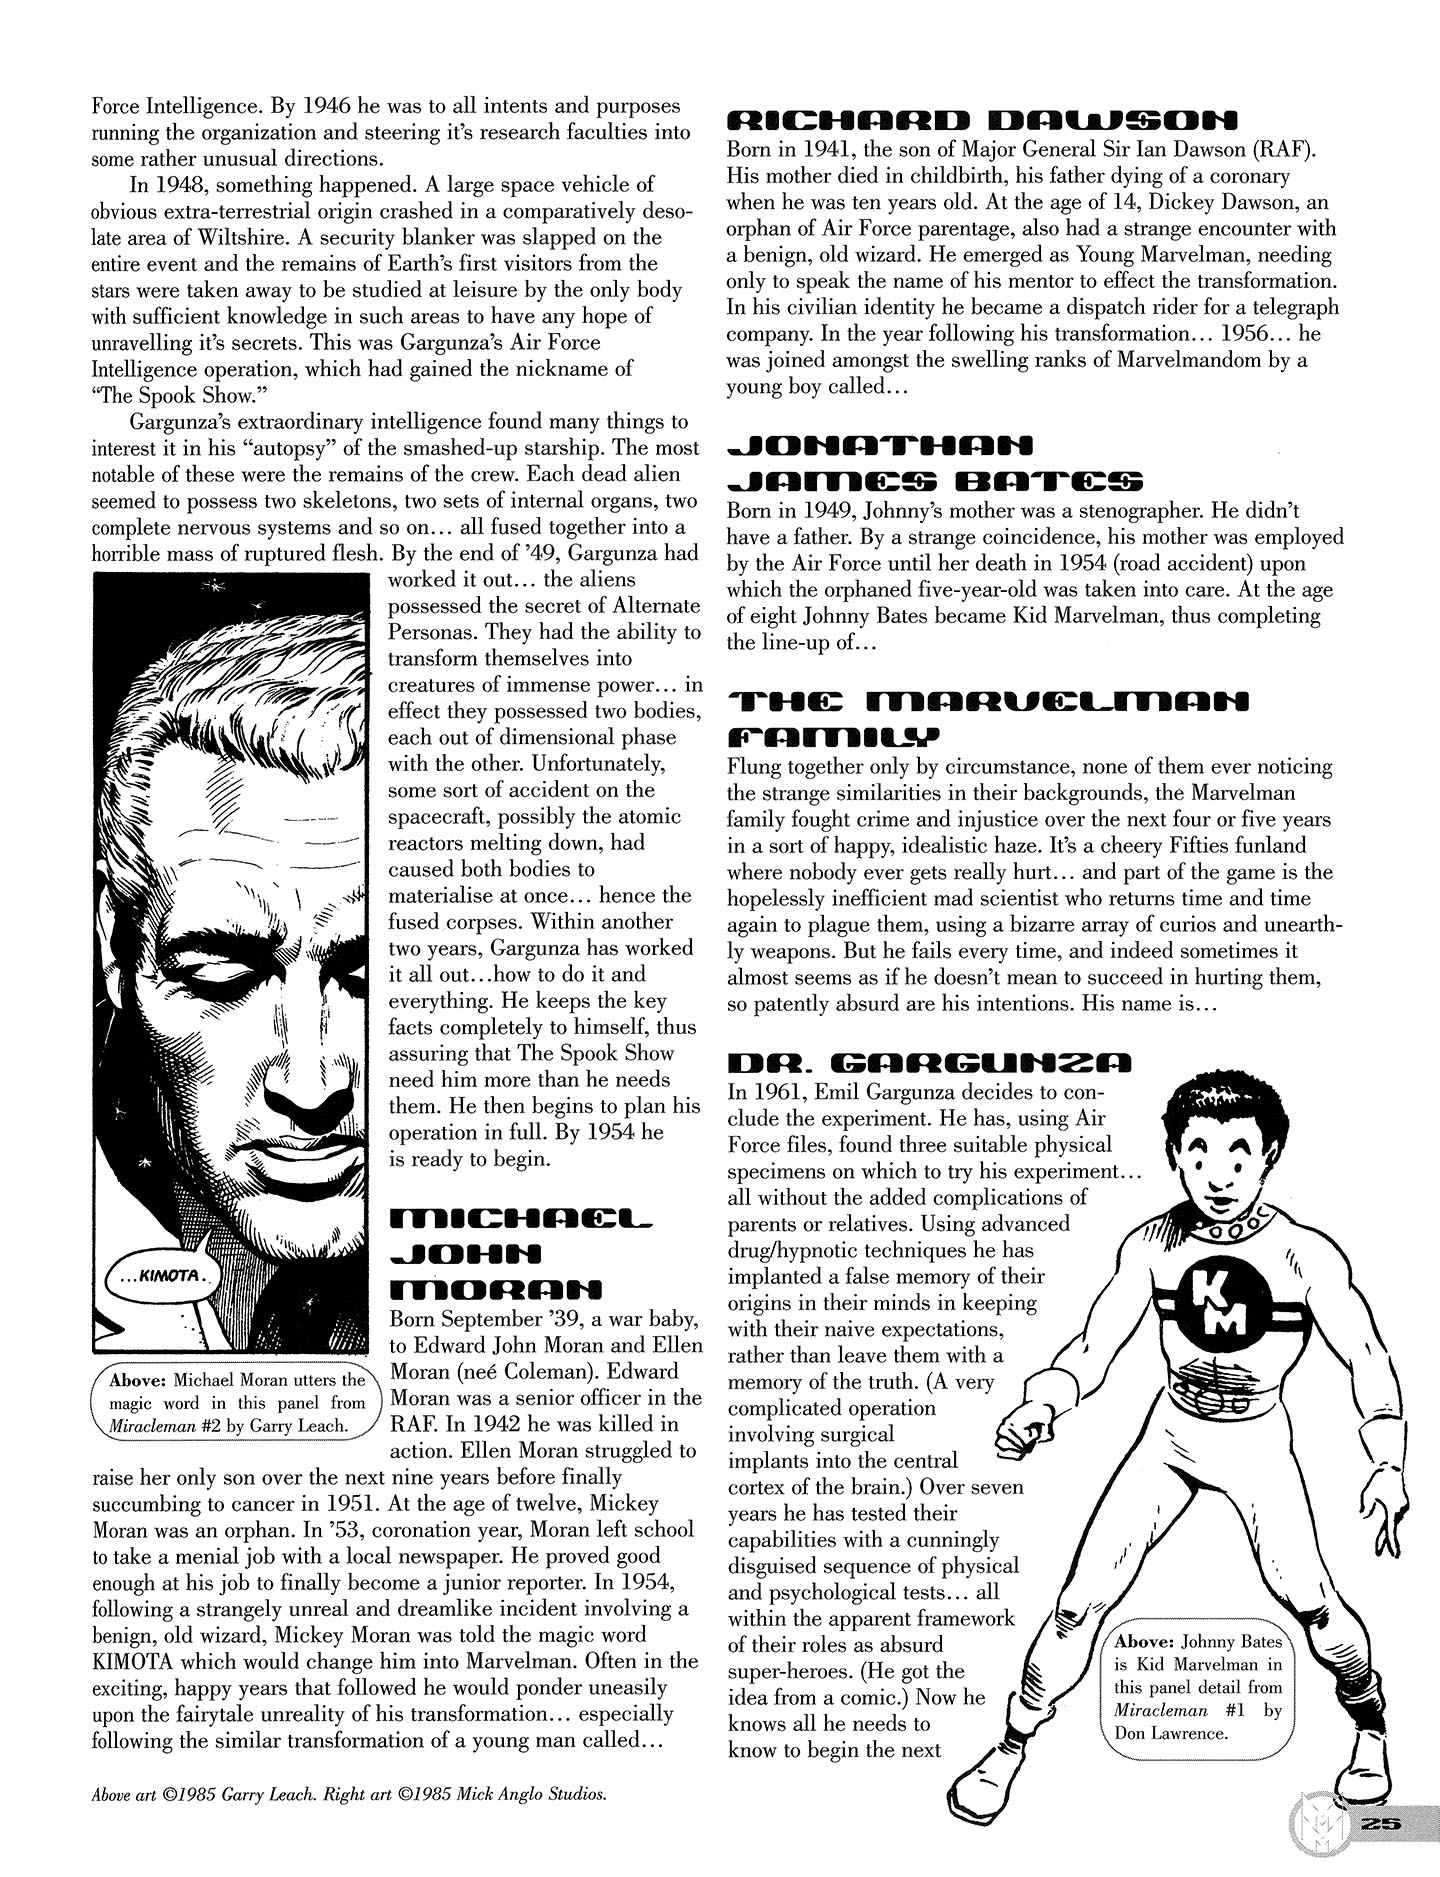 Read online Kimota!: The Miracleman Companion comic -  Issue # Full - 26